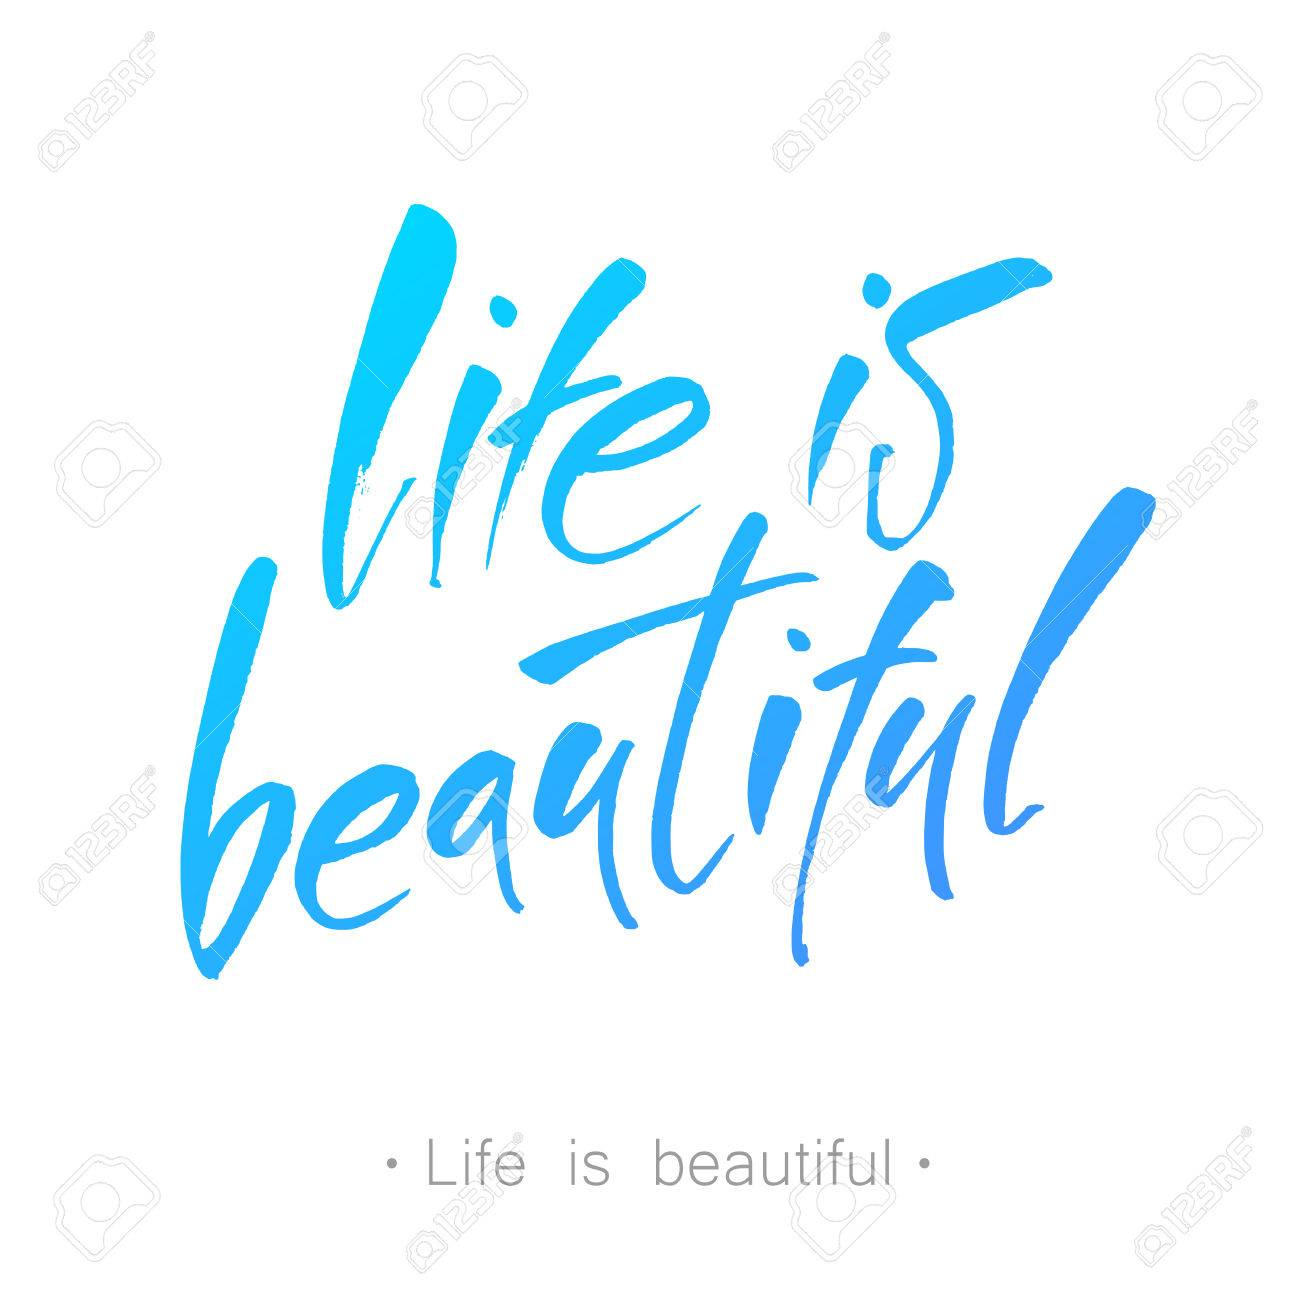 Life is beautiful  Positive life quote 'It's a beautiful life'